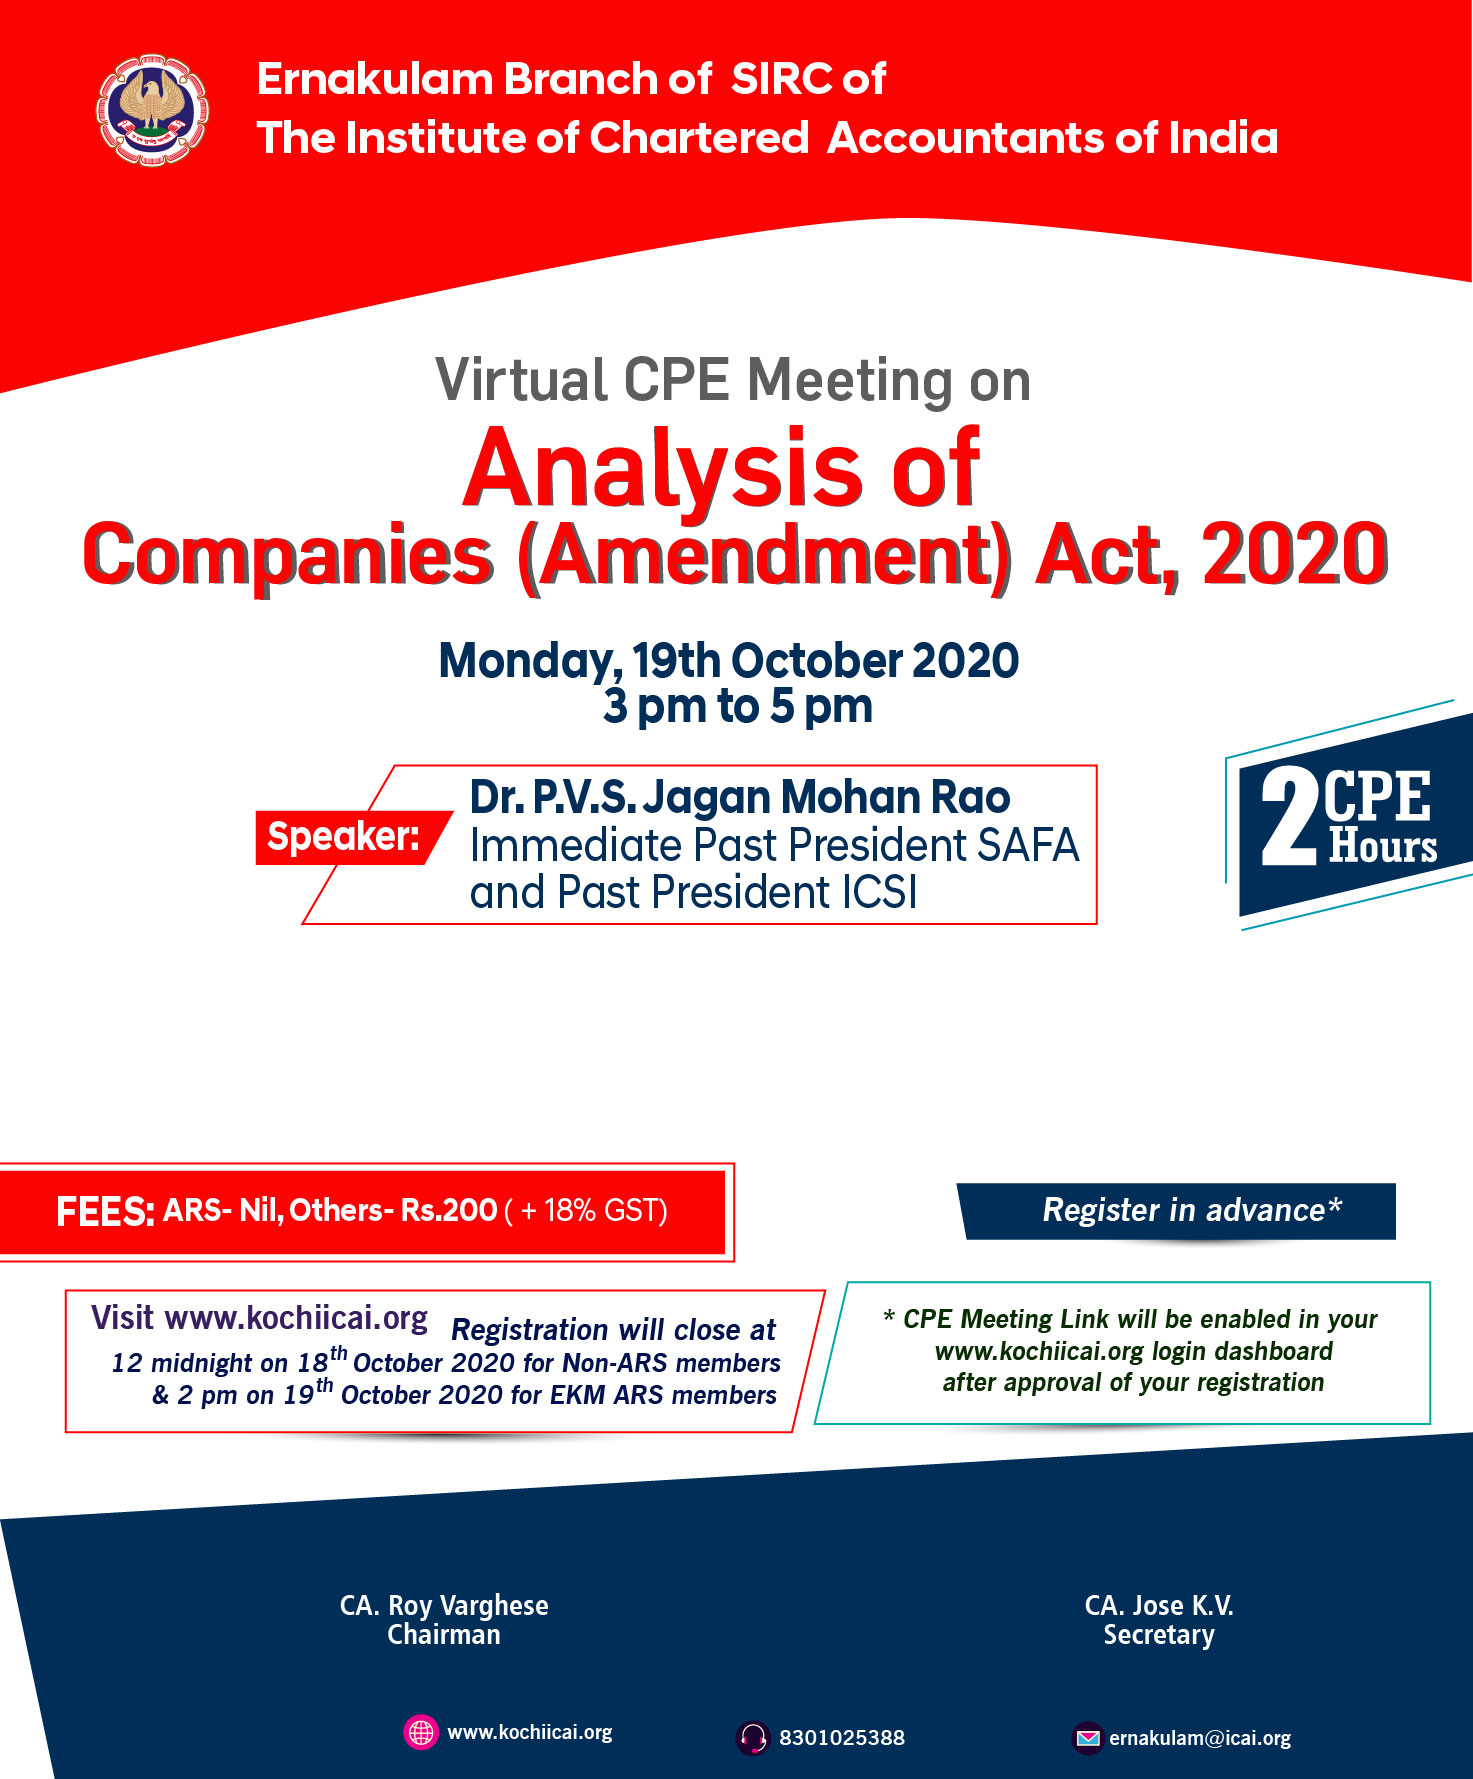 Virtual CPE Seminar on Analysis of Companies (Amendment) Act, 2020